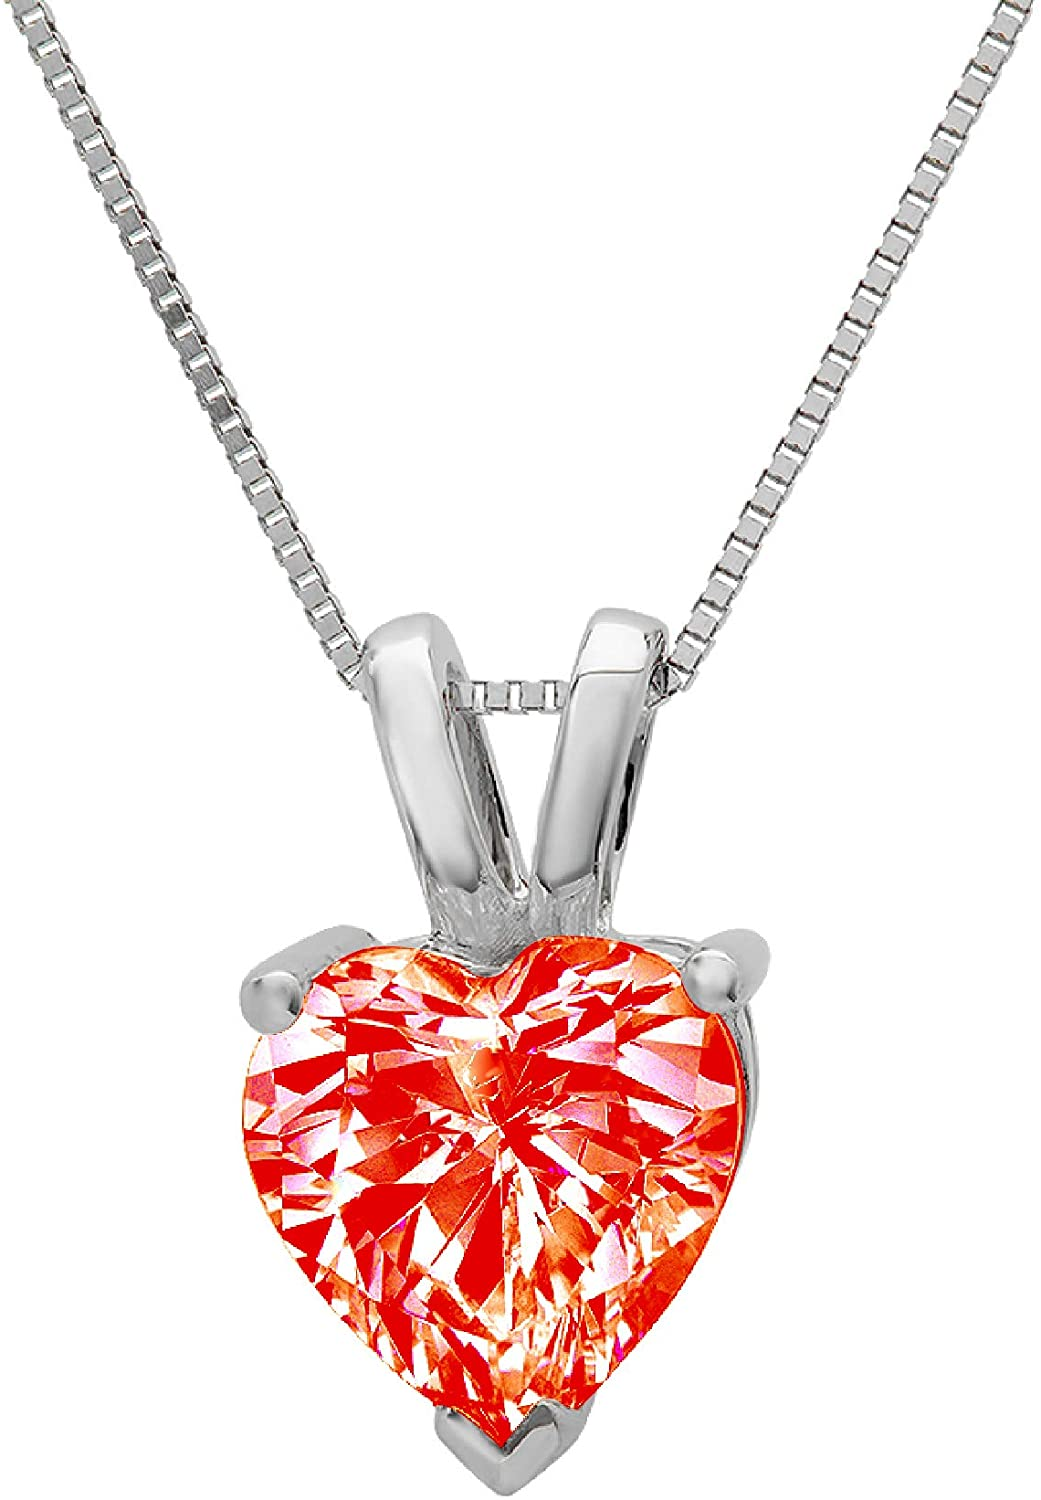 0.45 ct Brilliant Heart Cut Red Simulated diamond Cubic Zirconia Ideal VVS1 D Solitaire Pendant Necklace With 16 Gold Chain box Solid Real 14k White Gold